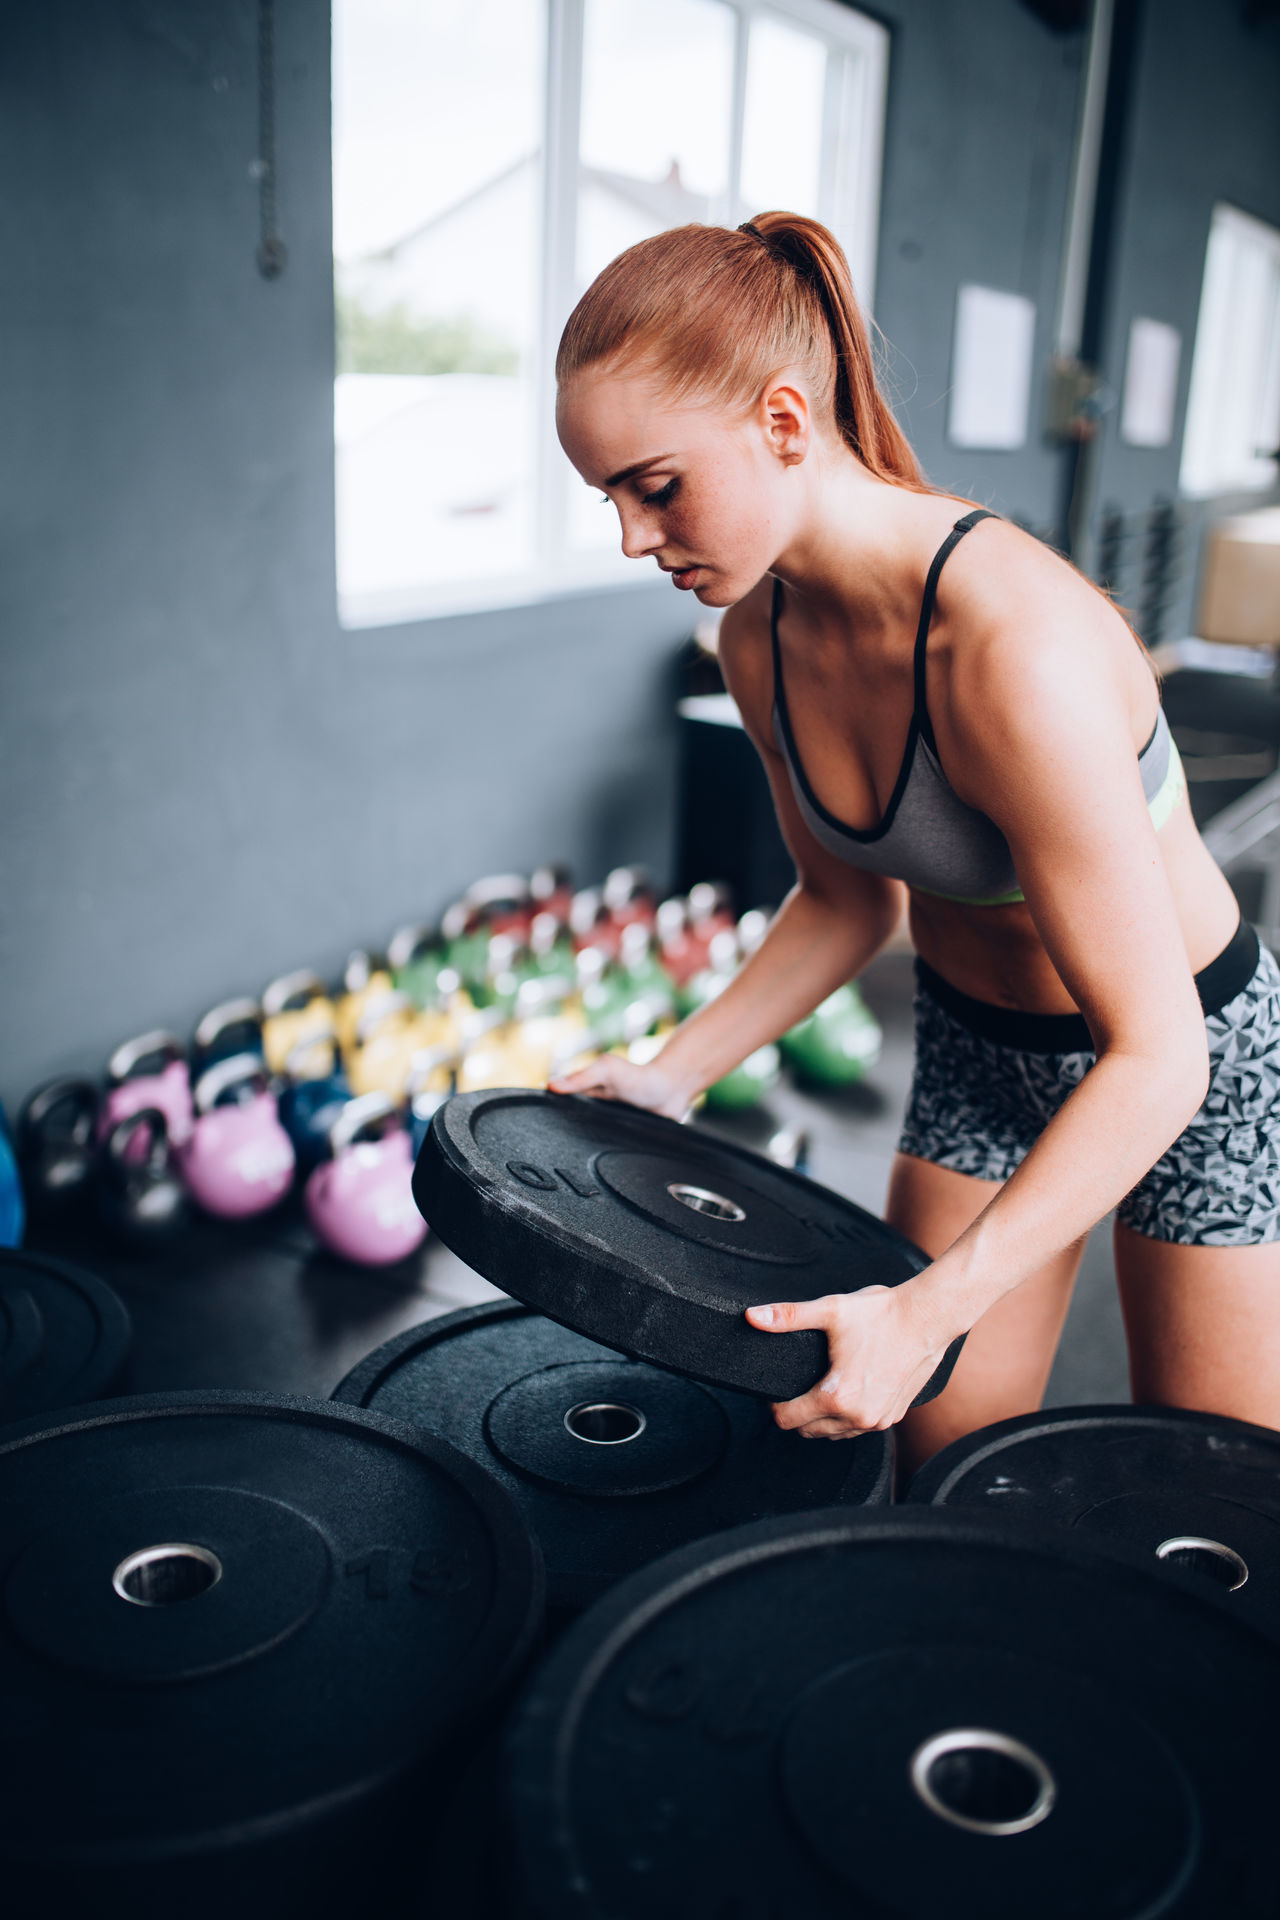 Fit Fitness Fitness Training Fitnessmotivation Gym Gym Time Healthy Lifestyle Heavy Hobby Indoors  Kettlebell  Lifestyles Motivation Muscle Only Women Sport Sports Clothing Strong Weightlifting Weightloss Weights Women Workout Workoutmotivation Young Adult